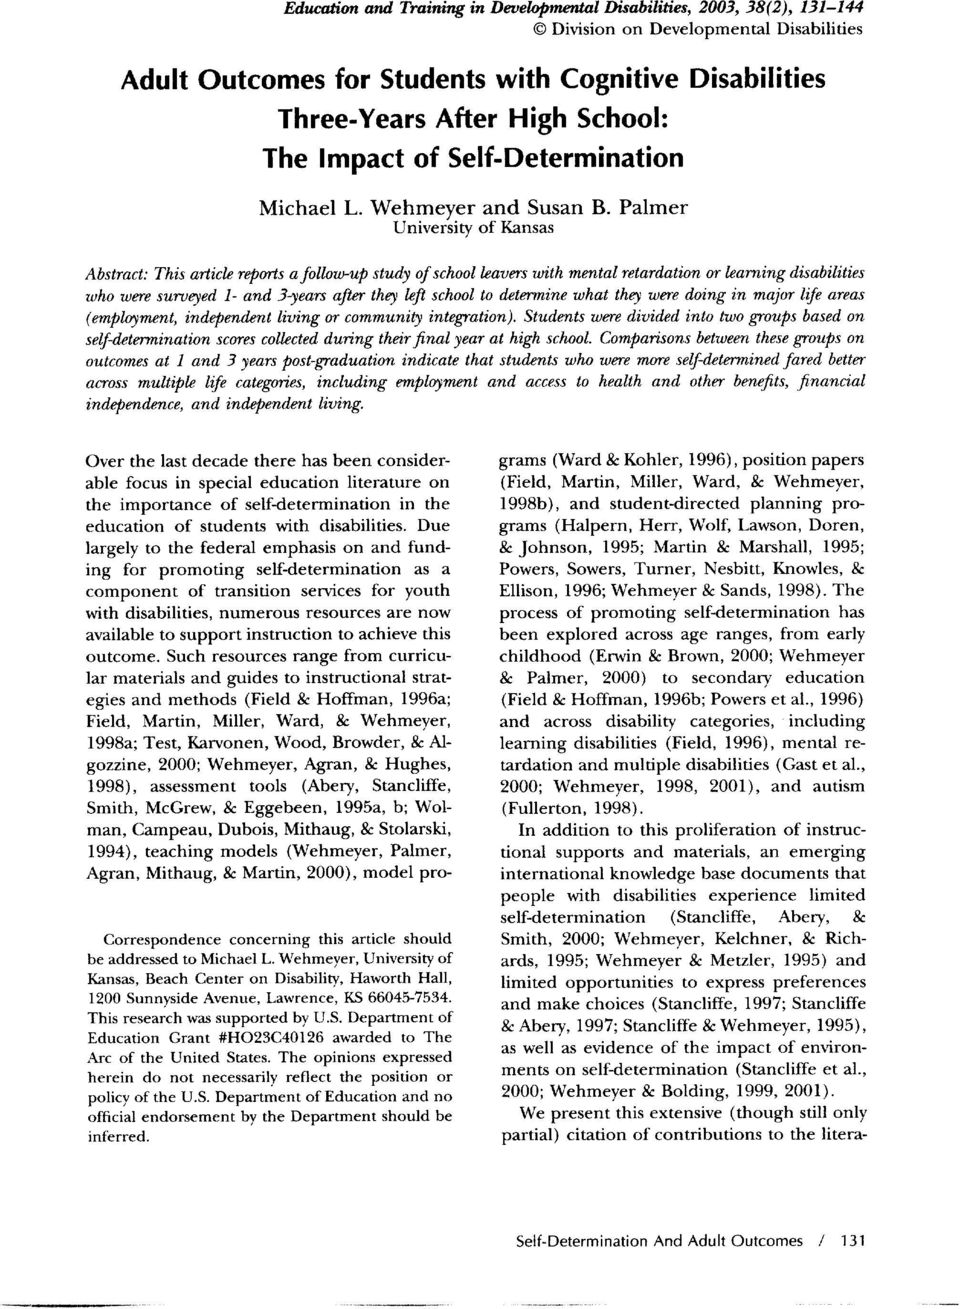 Palmer University of Kansas Abstract: This article reports afollow-up study of school leavers with mental retardation or learning disabilities who were surveyed 1- and 3-years after they left school